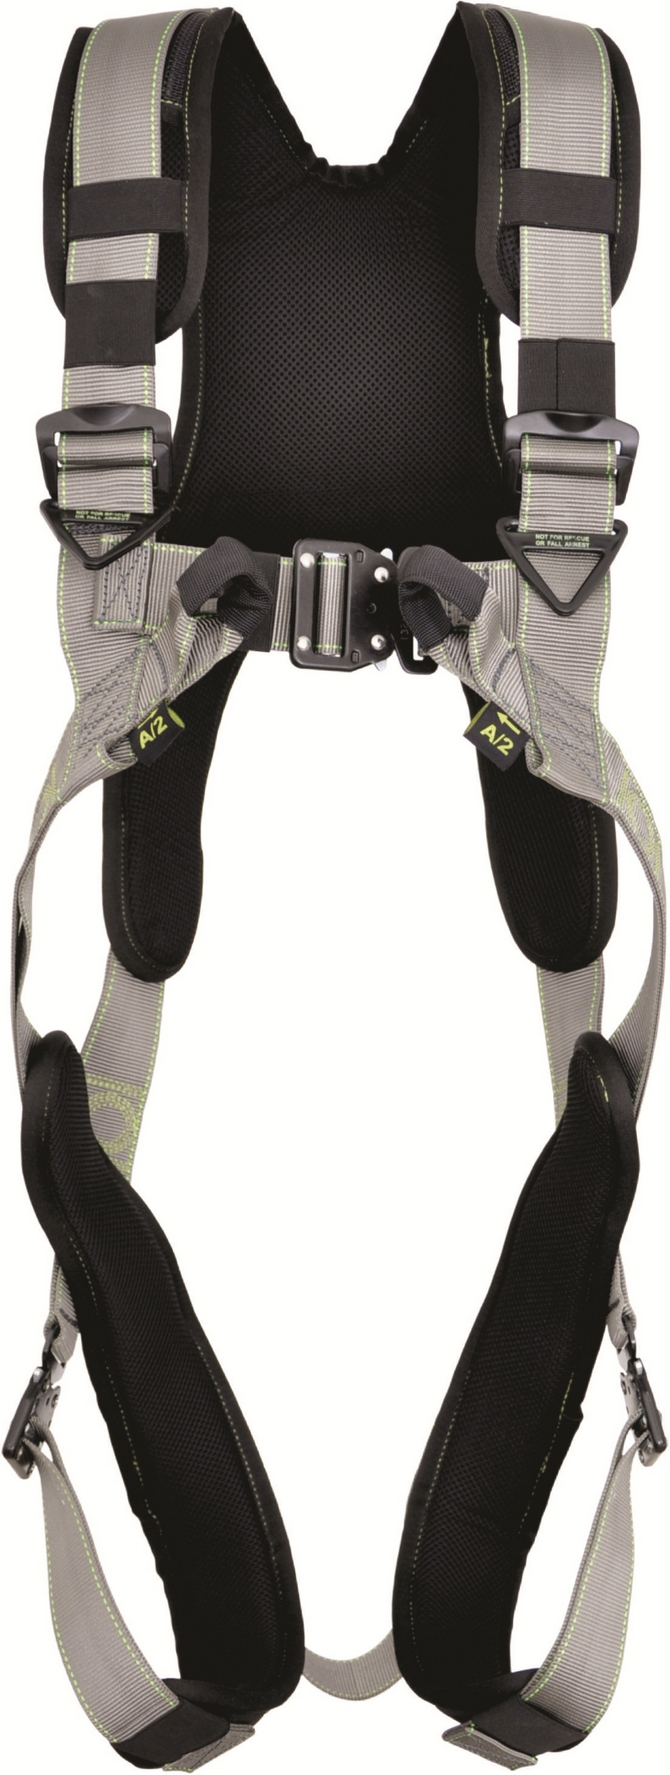 FULL BODY HARNESS FLY'IN 1  BSH008